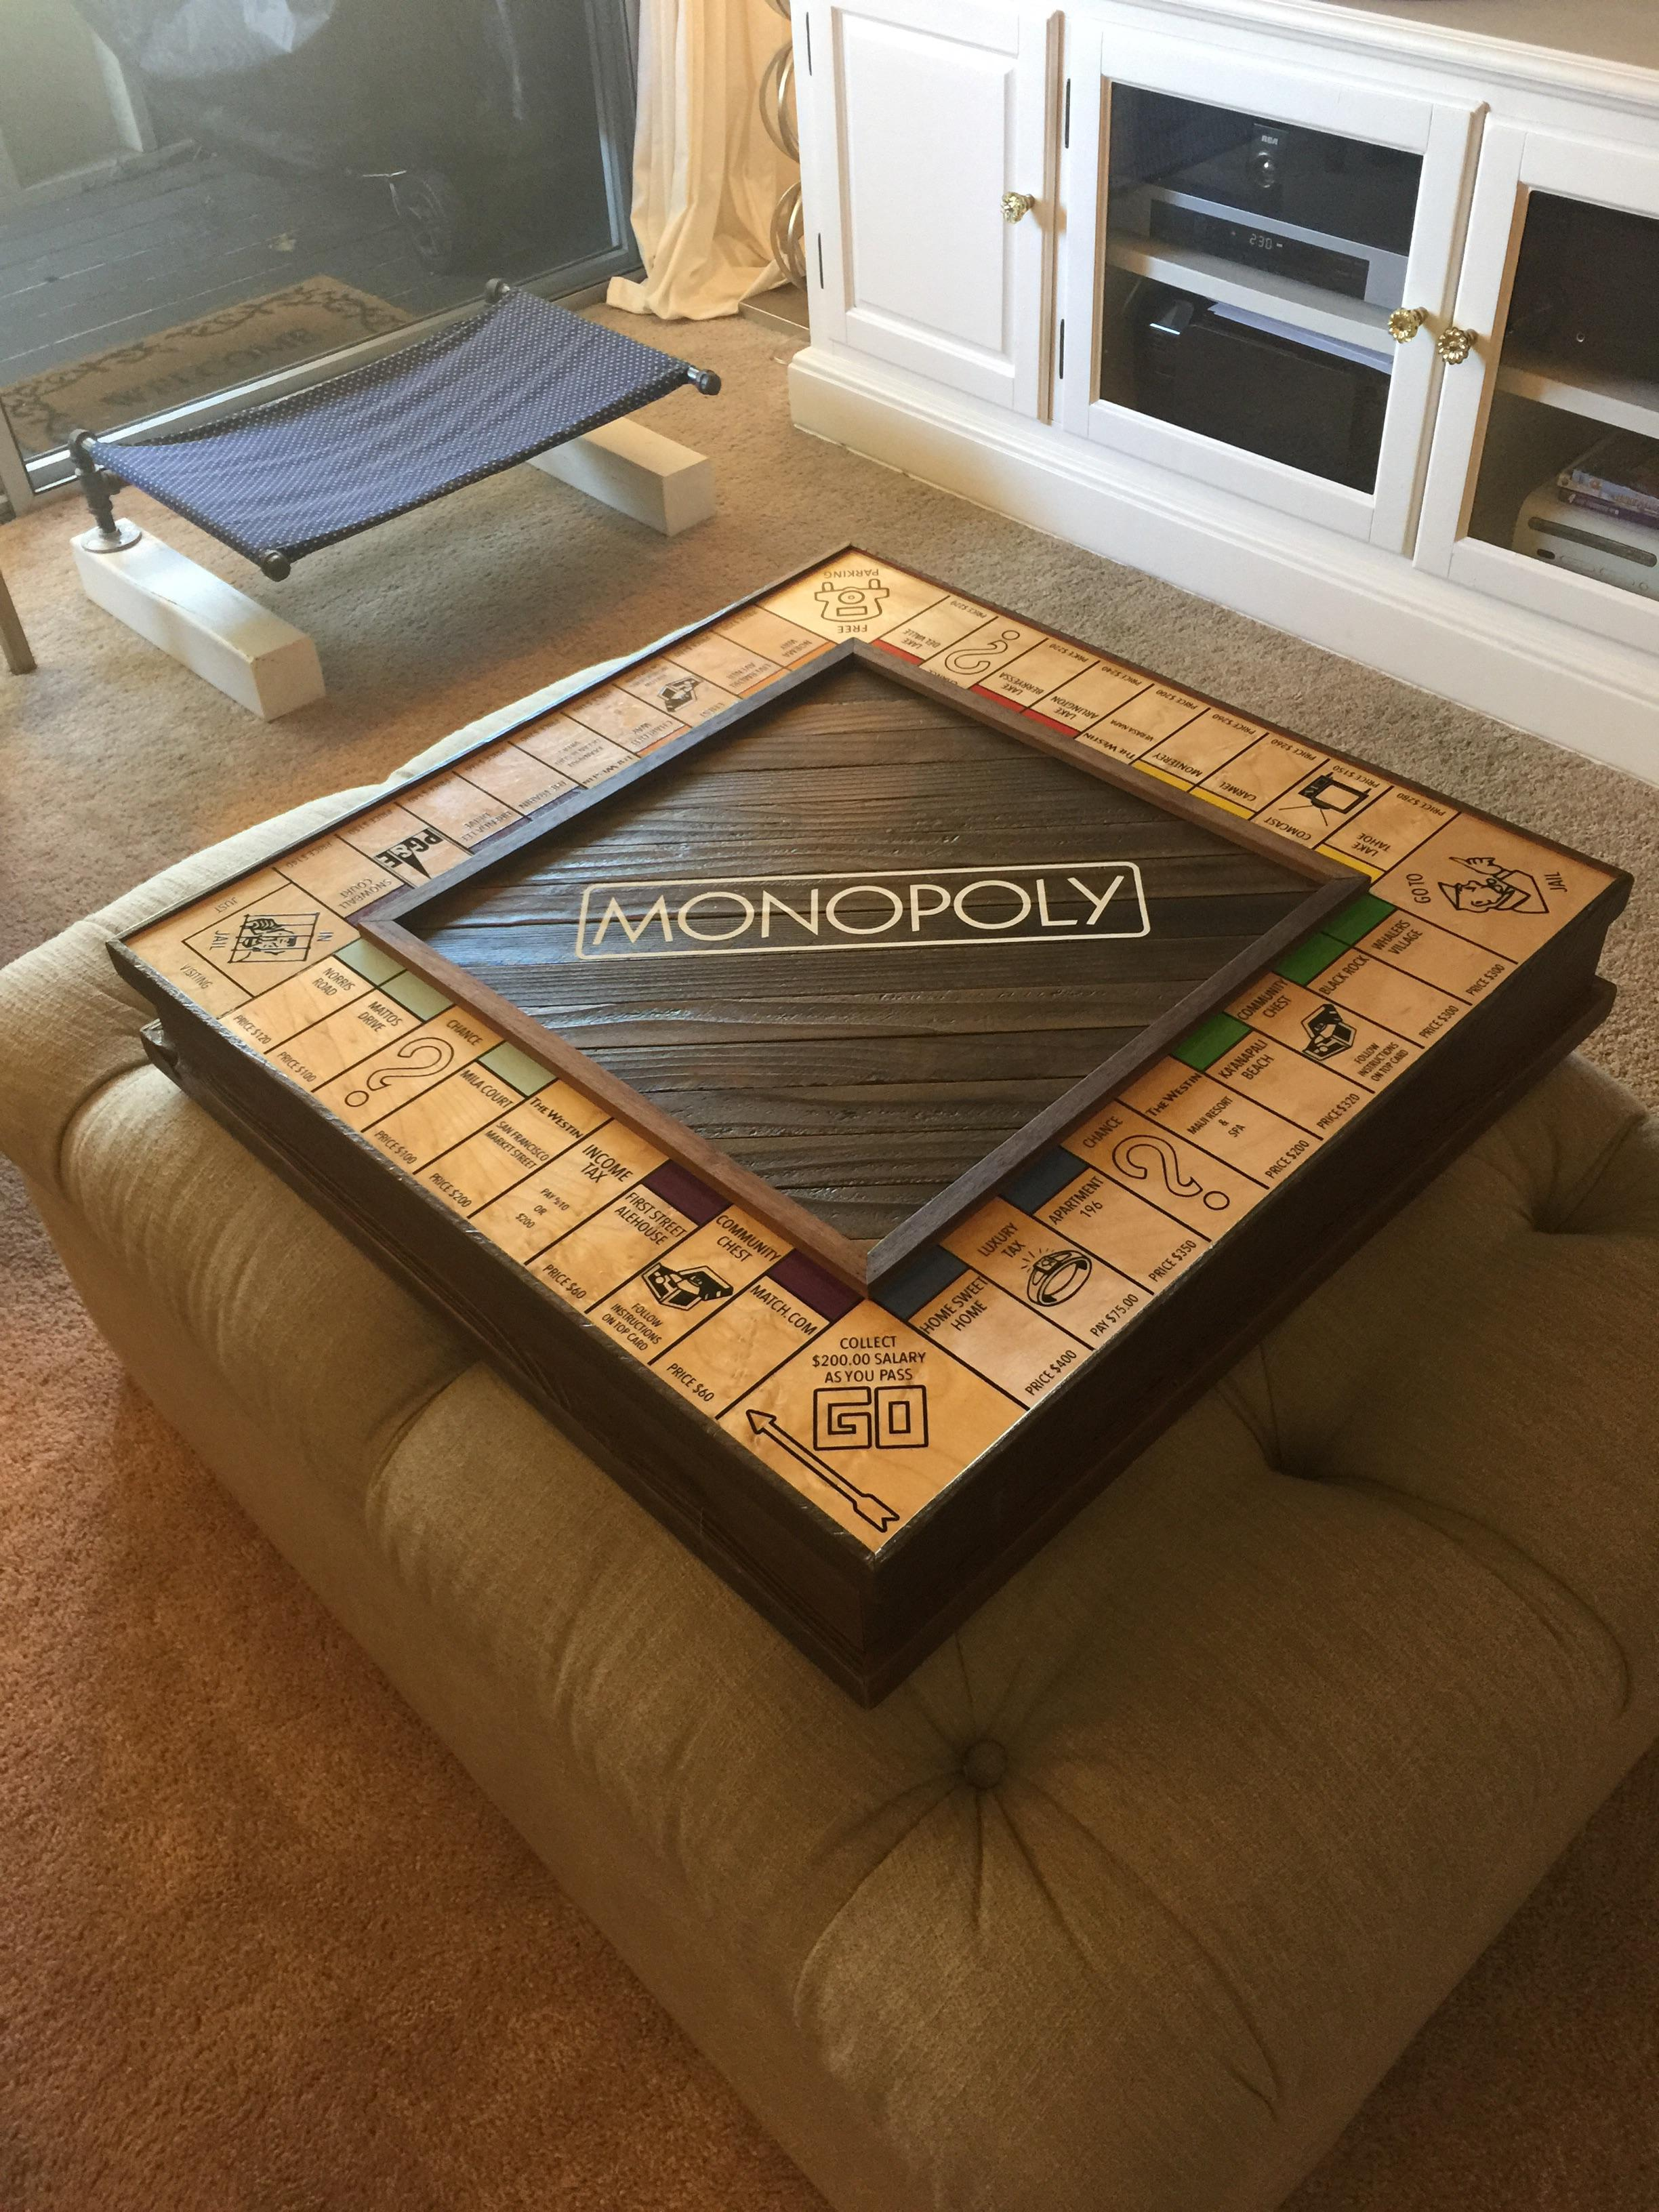 Guy Handcrafts Monopoly Board To Propose To His Girlfriend In An Amazing Way mono8